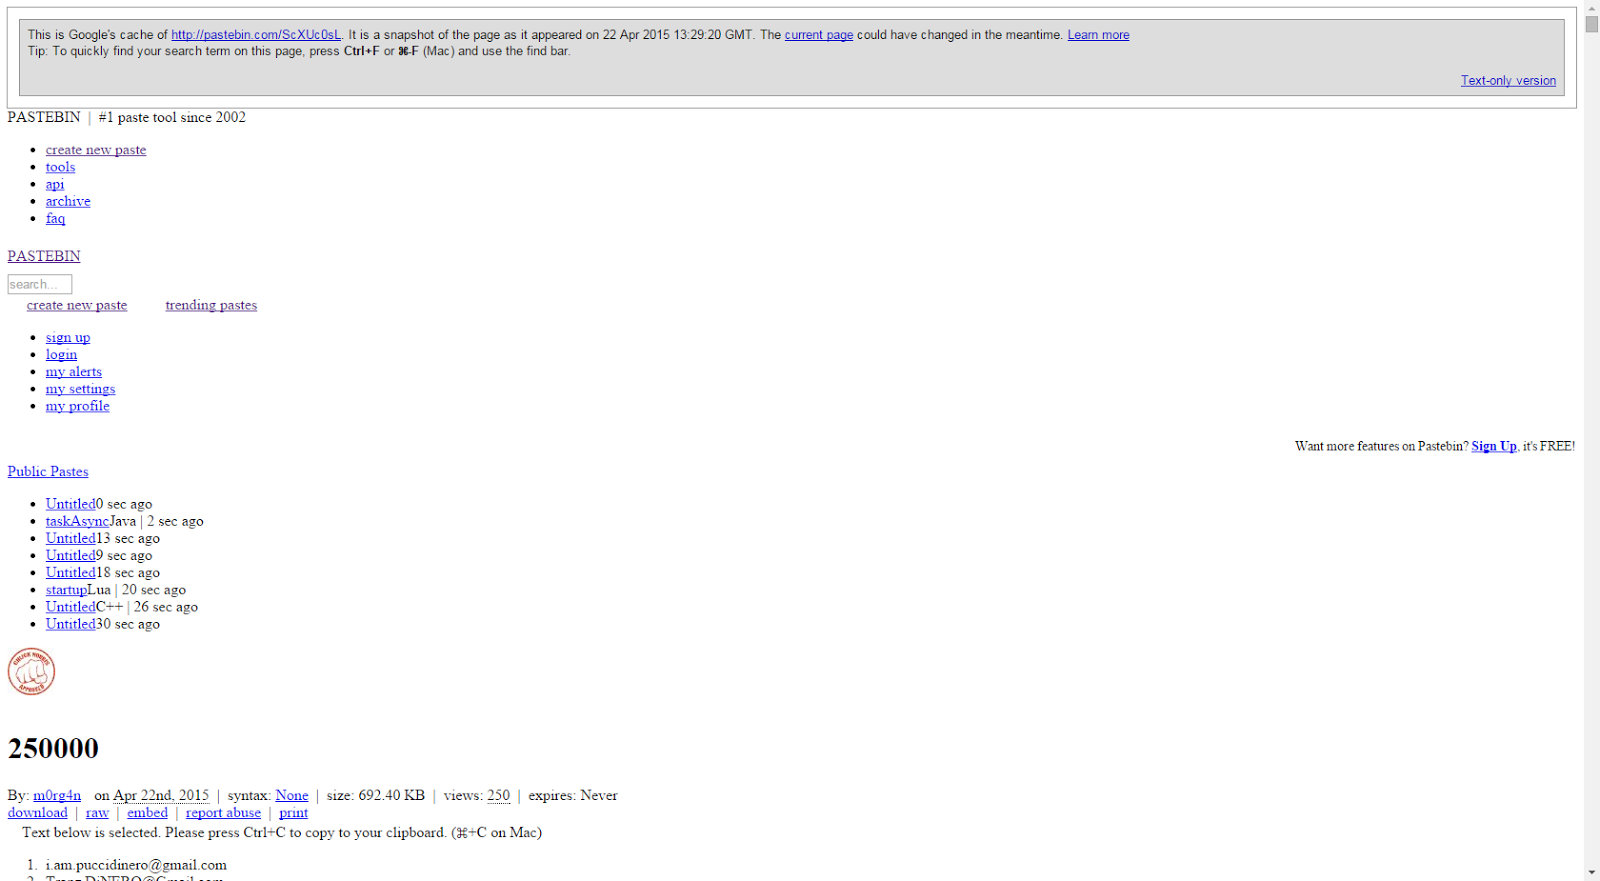 How to view Removed OR Private pastes on Pastebin?